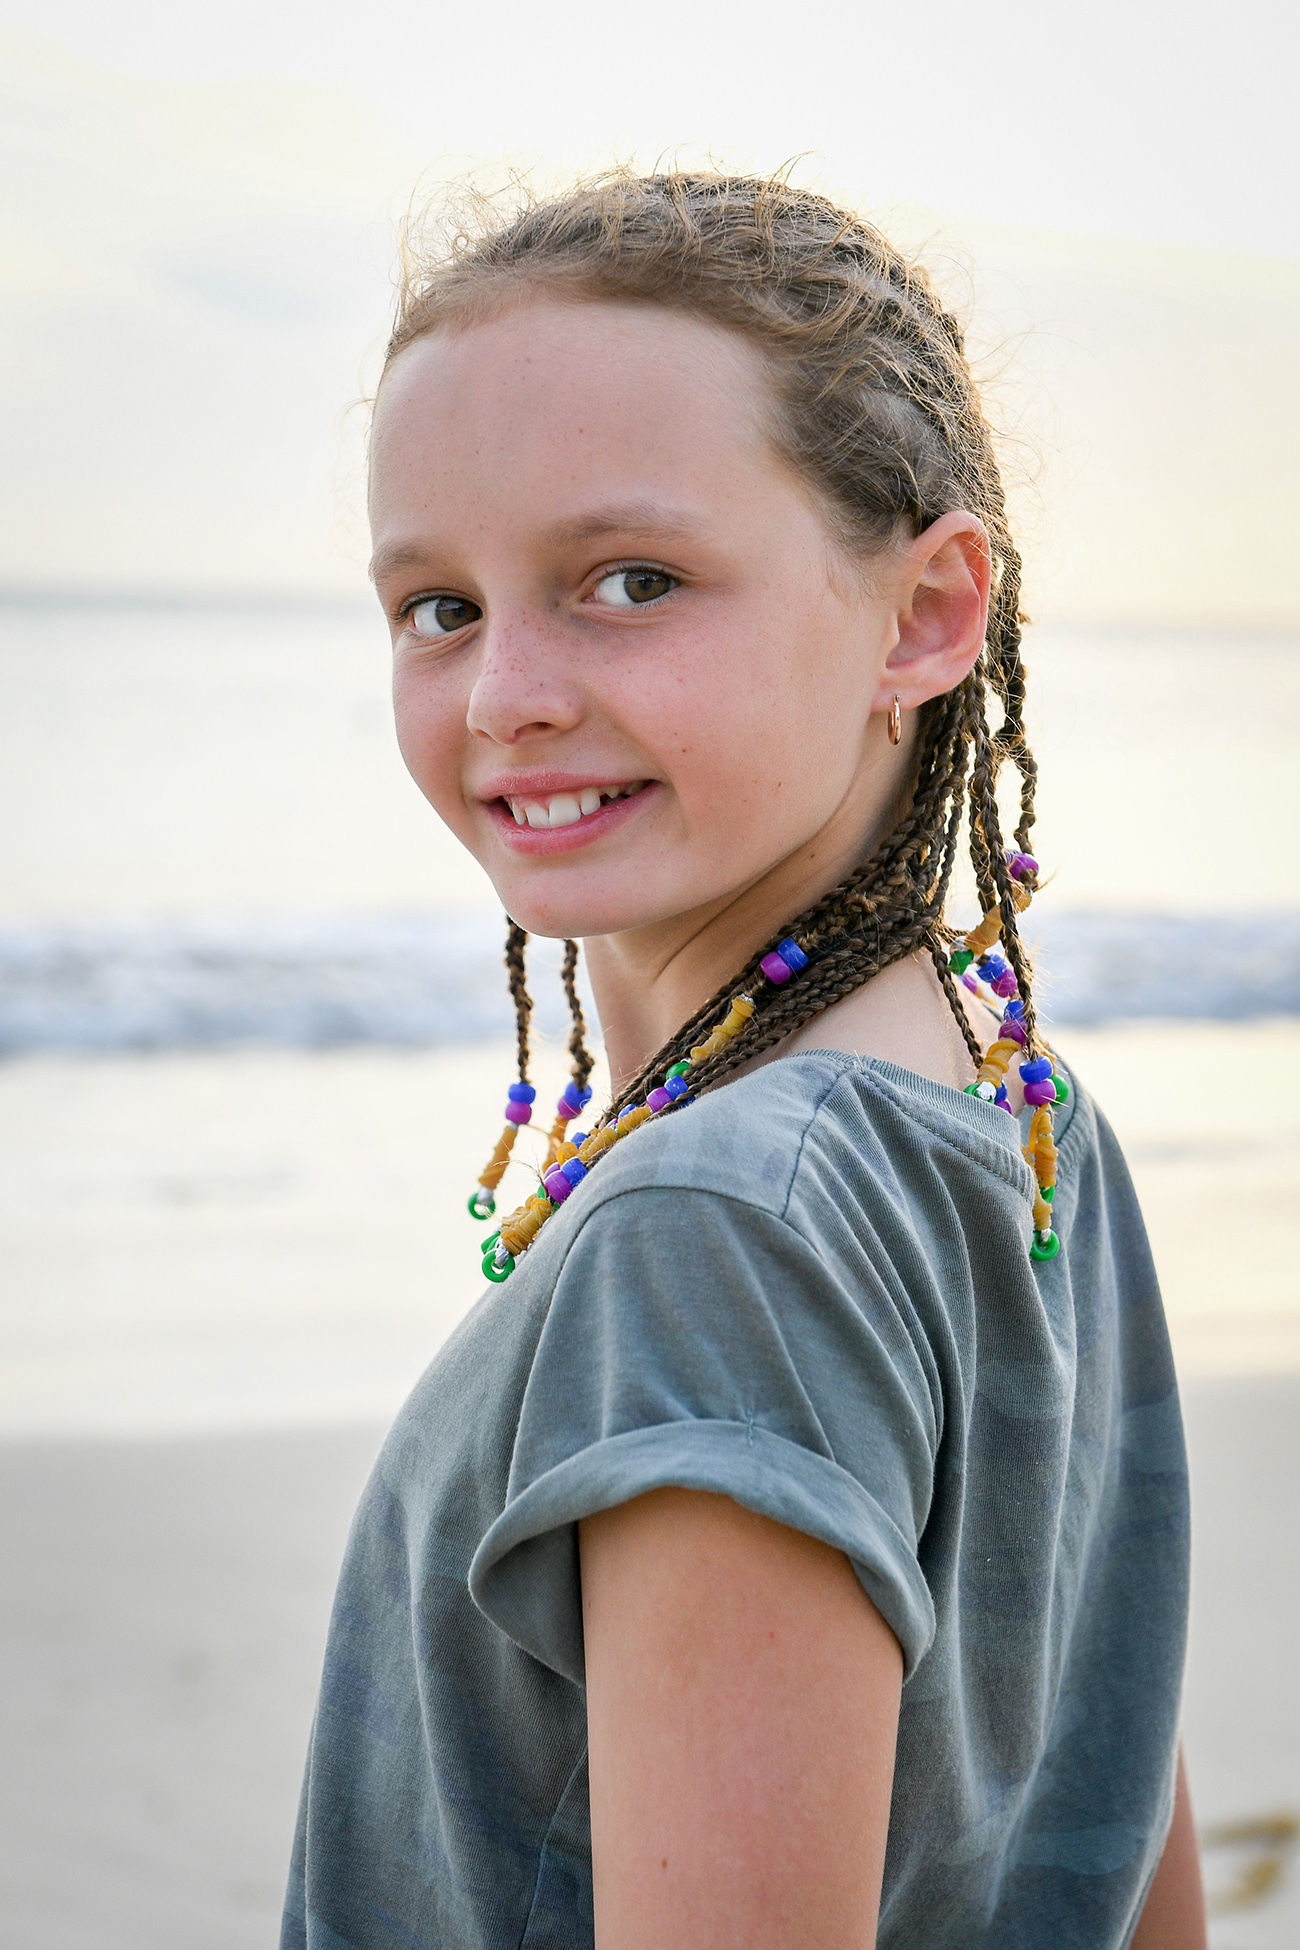 Cute young girl smiles back at the camera in Fiji photoshoot